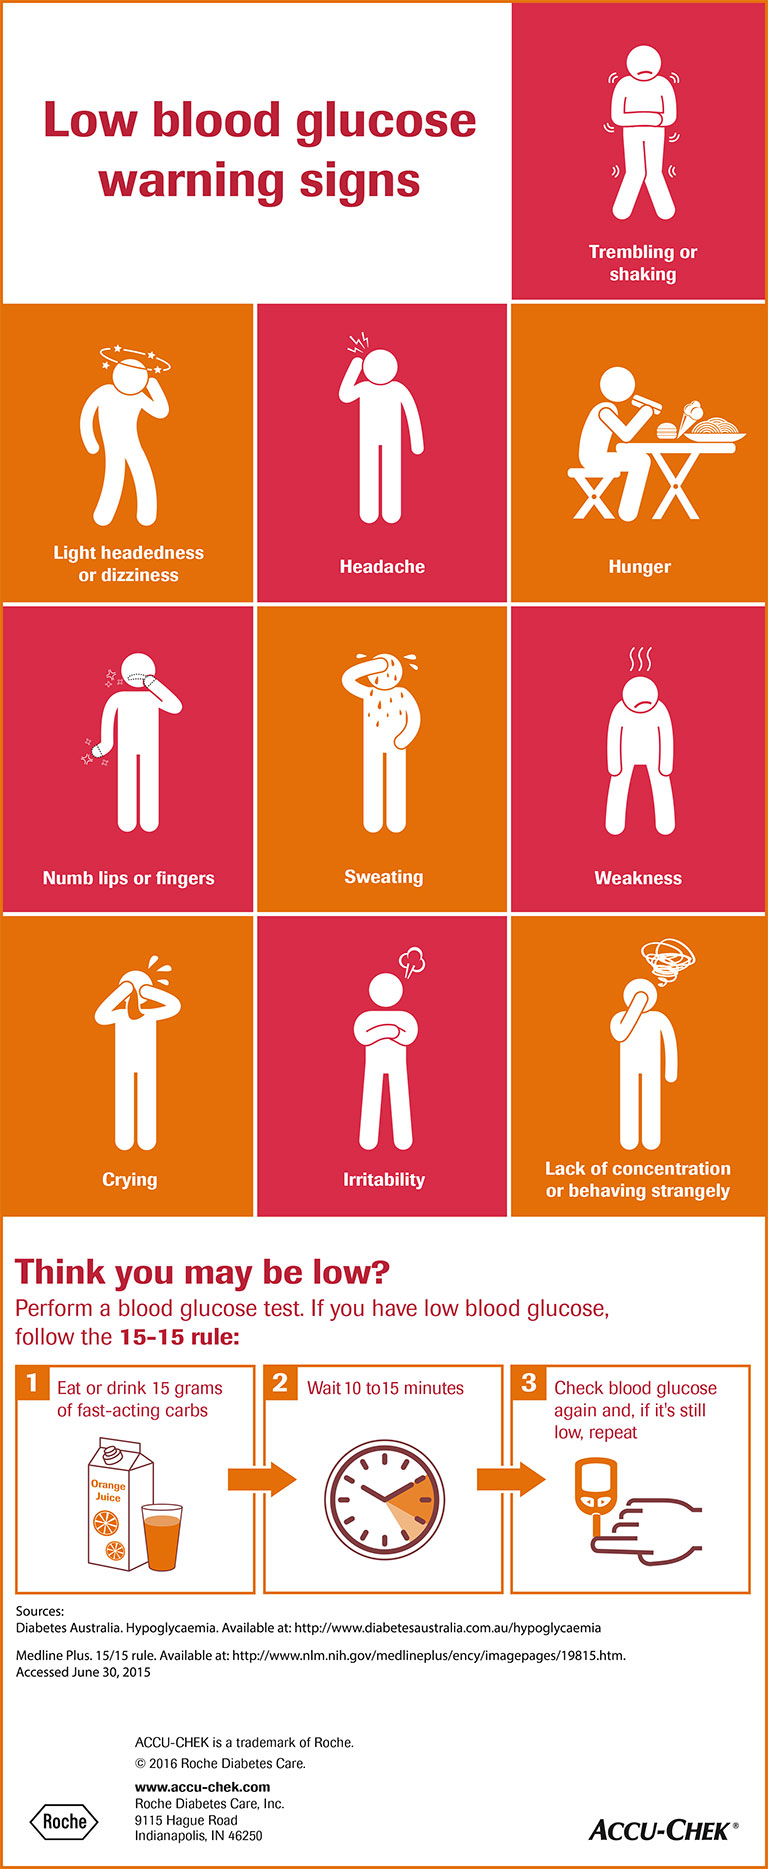 Infographic detailing low blood sugar (hypoglycemia) warning signs, including shaking, dizziness, headache, and hunger